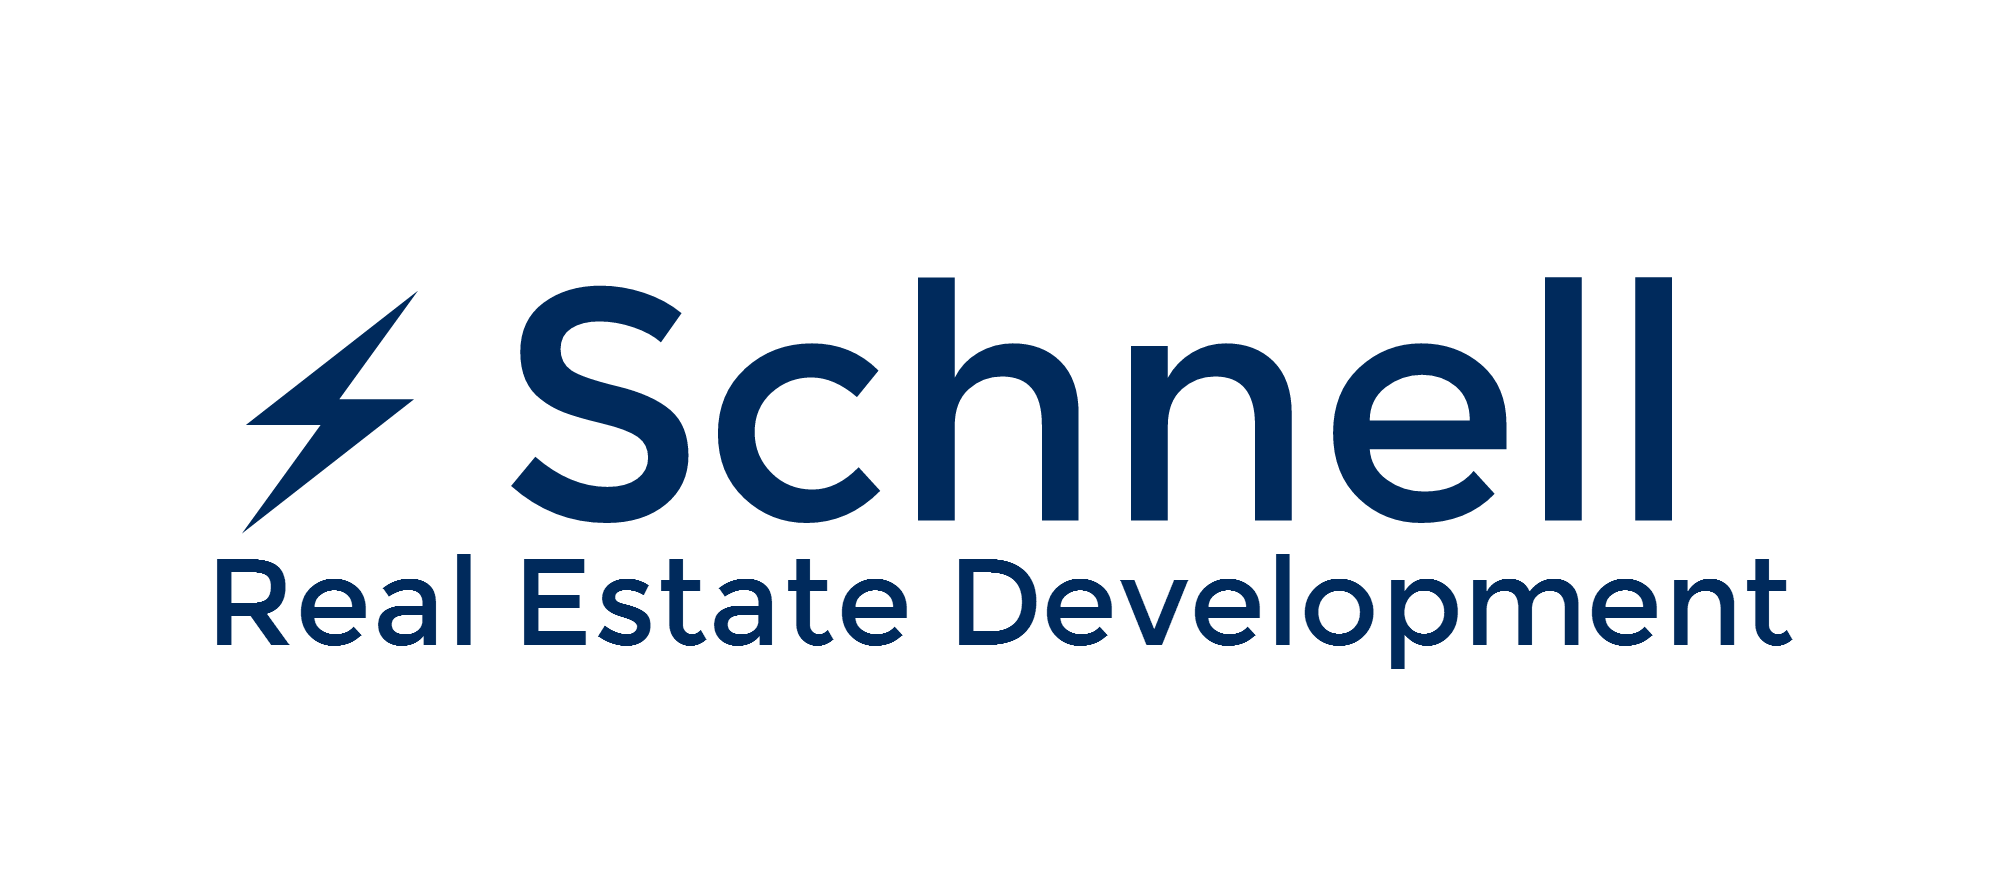 Real Estate Development Companies : Schnell development llc has been a leading real